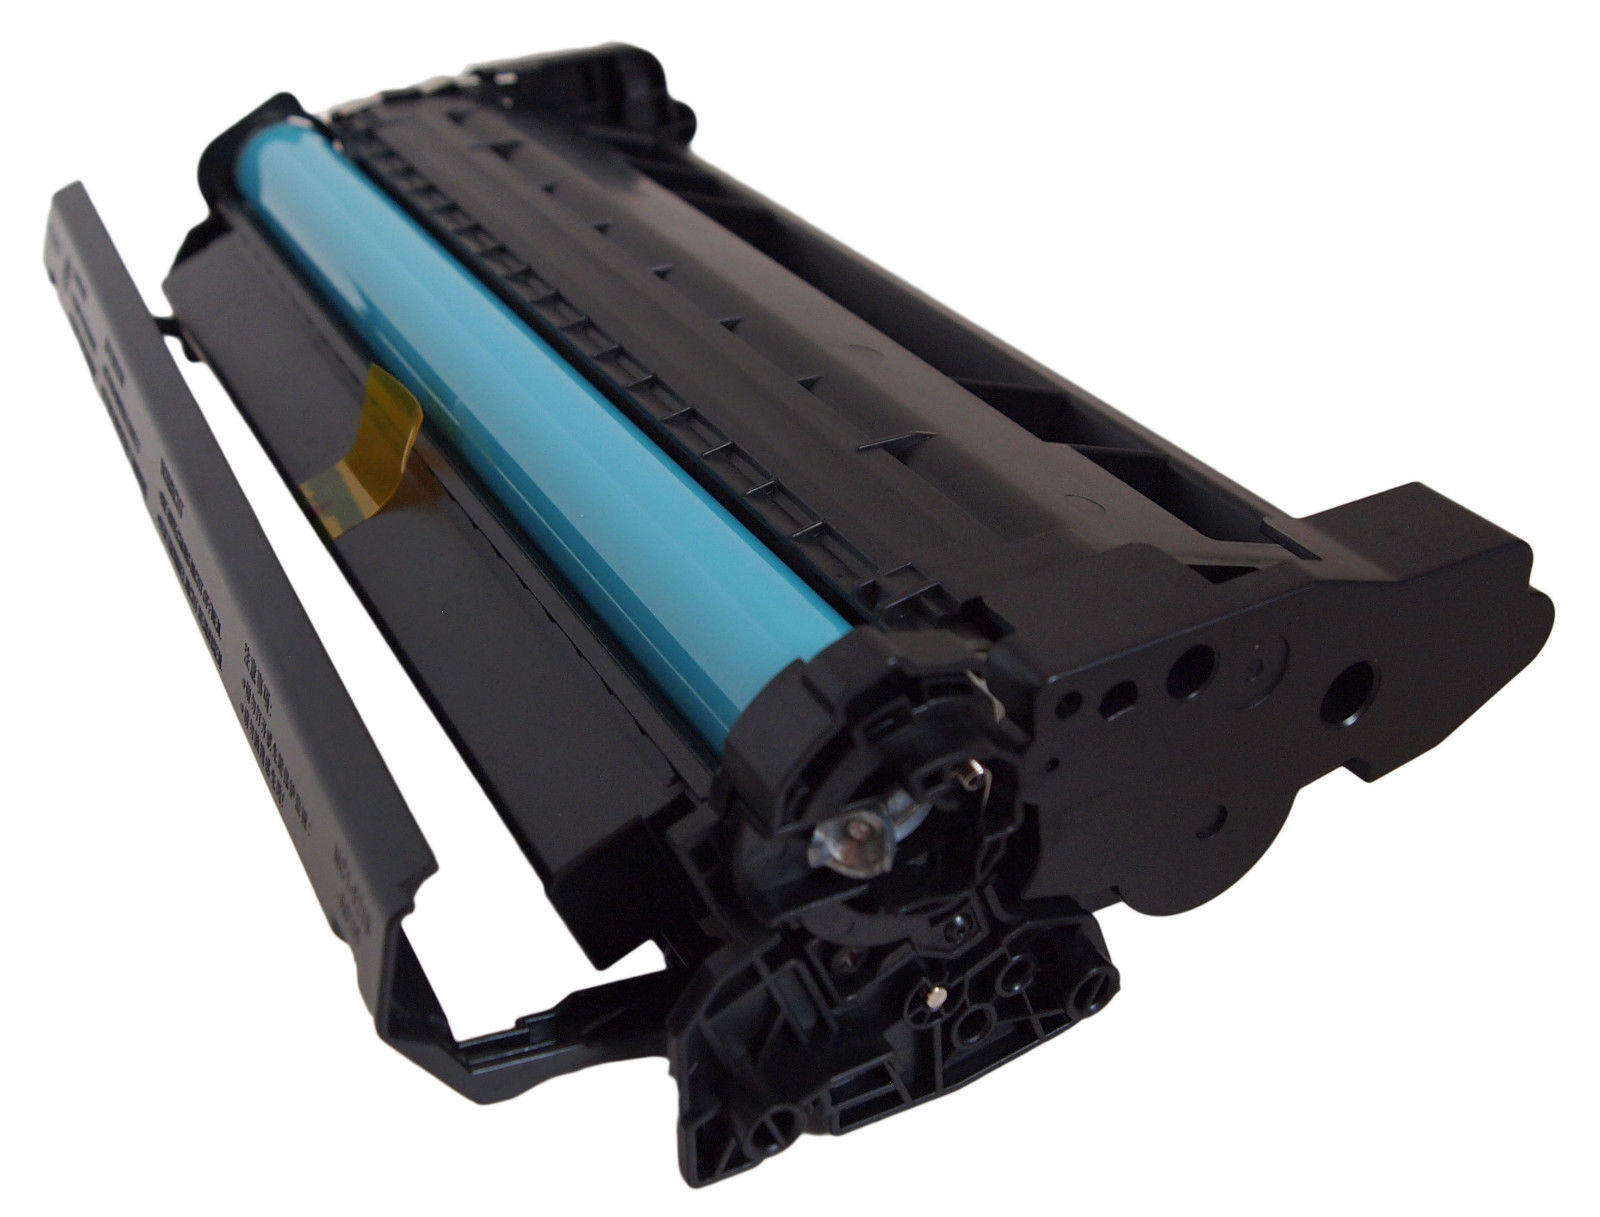 Compatible toner cartridges for HP printers